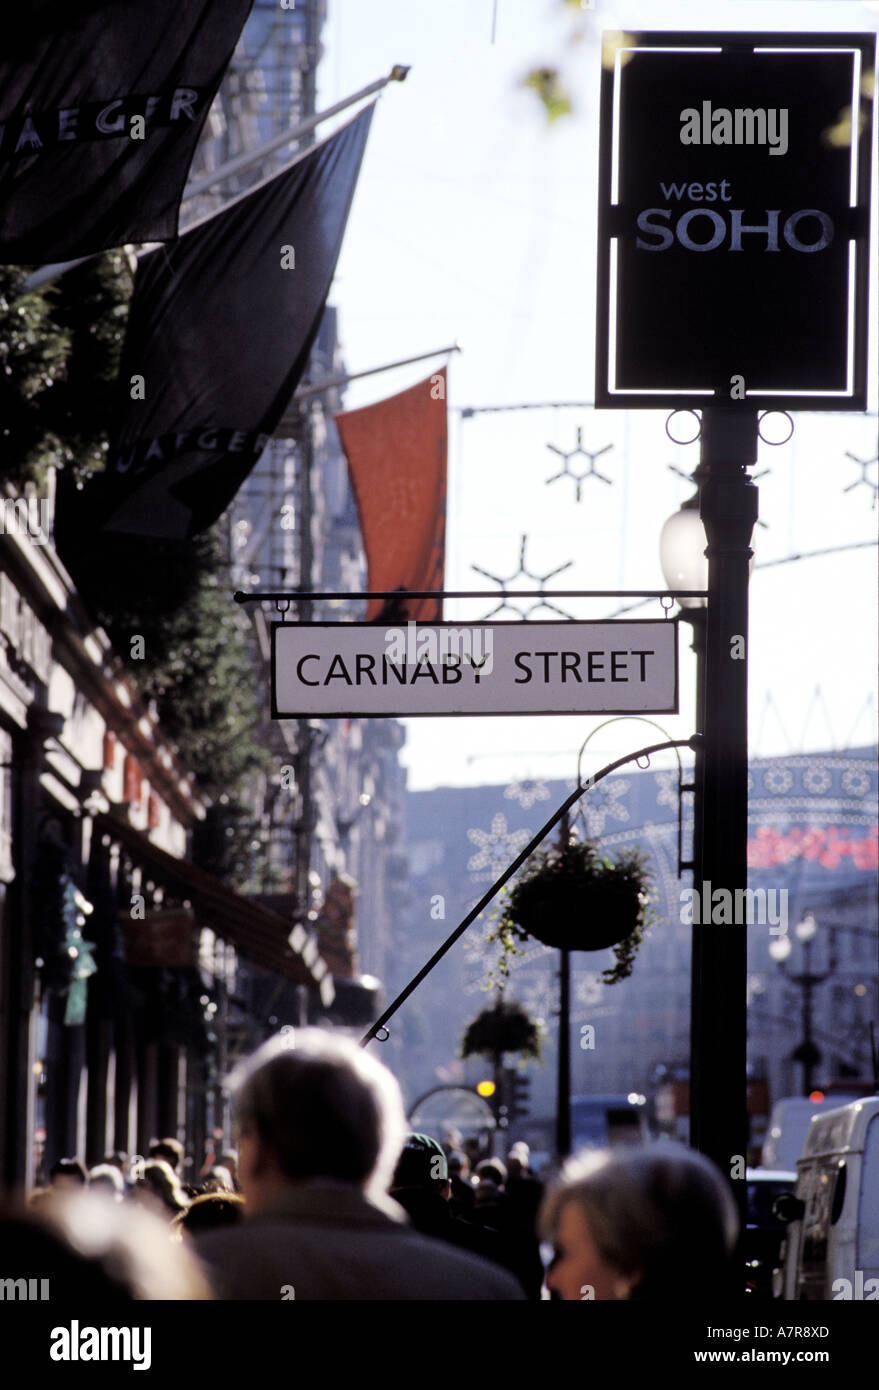 United Kingdom, London, Regent Street in the Carnaby district - Stock Image